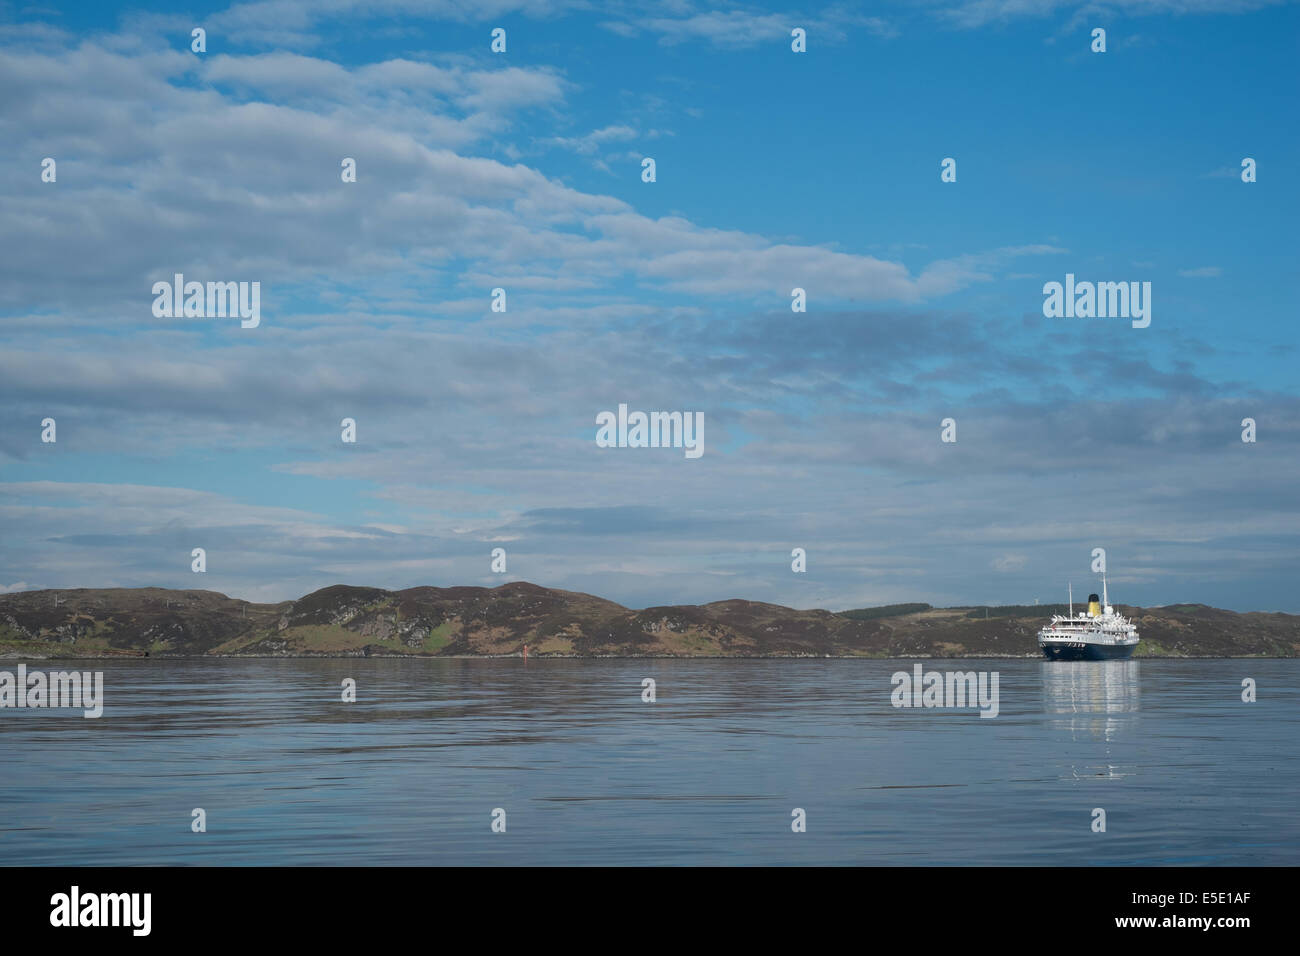 Cruise ship moored, Stornoway harbour, Isle of Lewis, Outer Hebrides on bright blue sea with blue skies - Stock Image